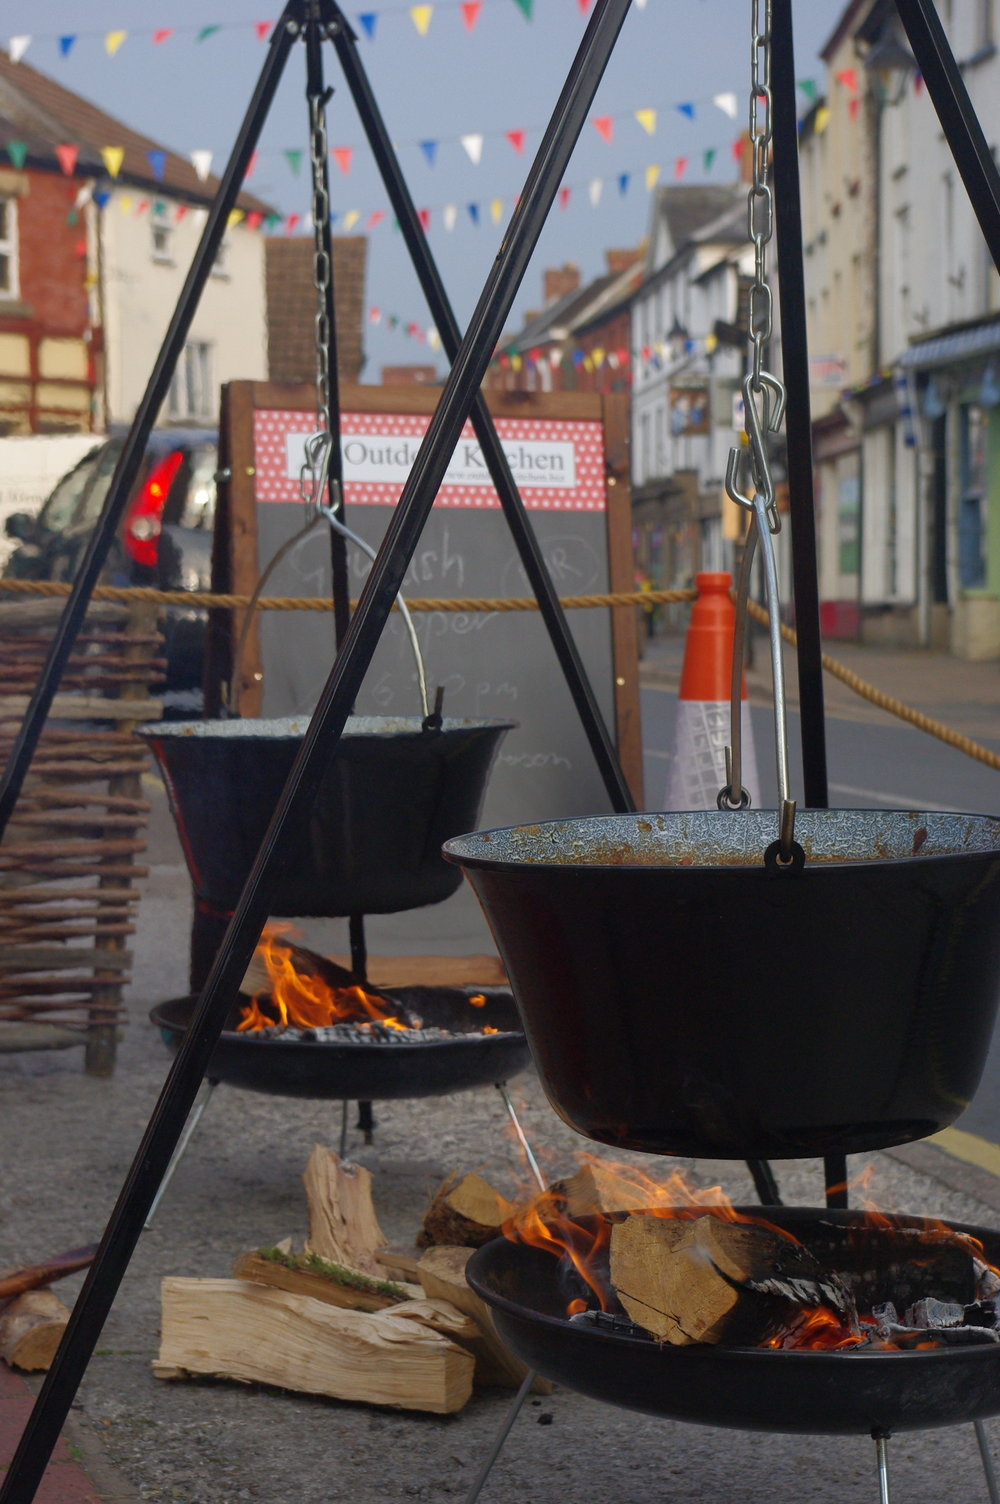 Kington Walking festival, goulash in the making